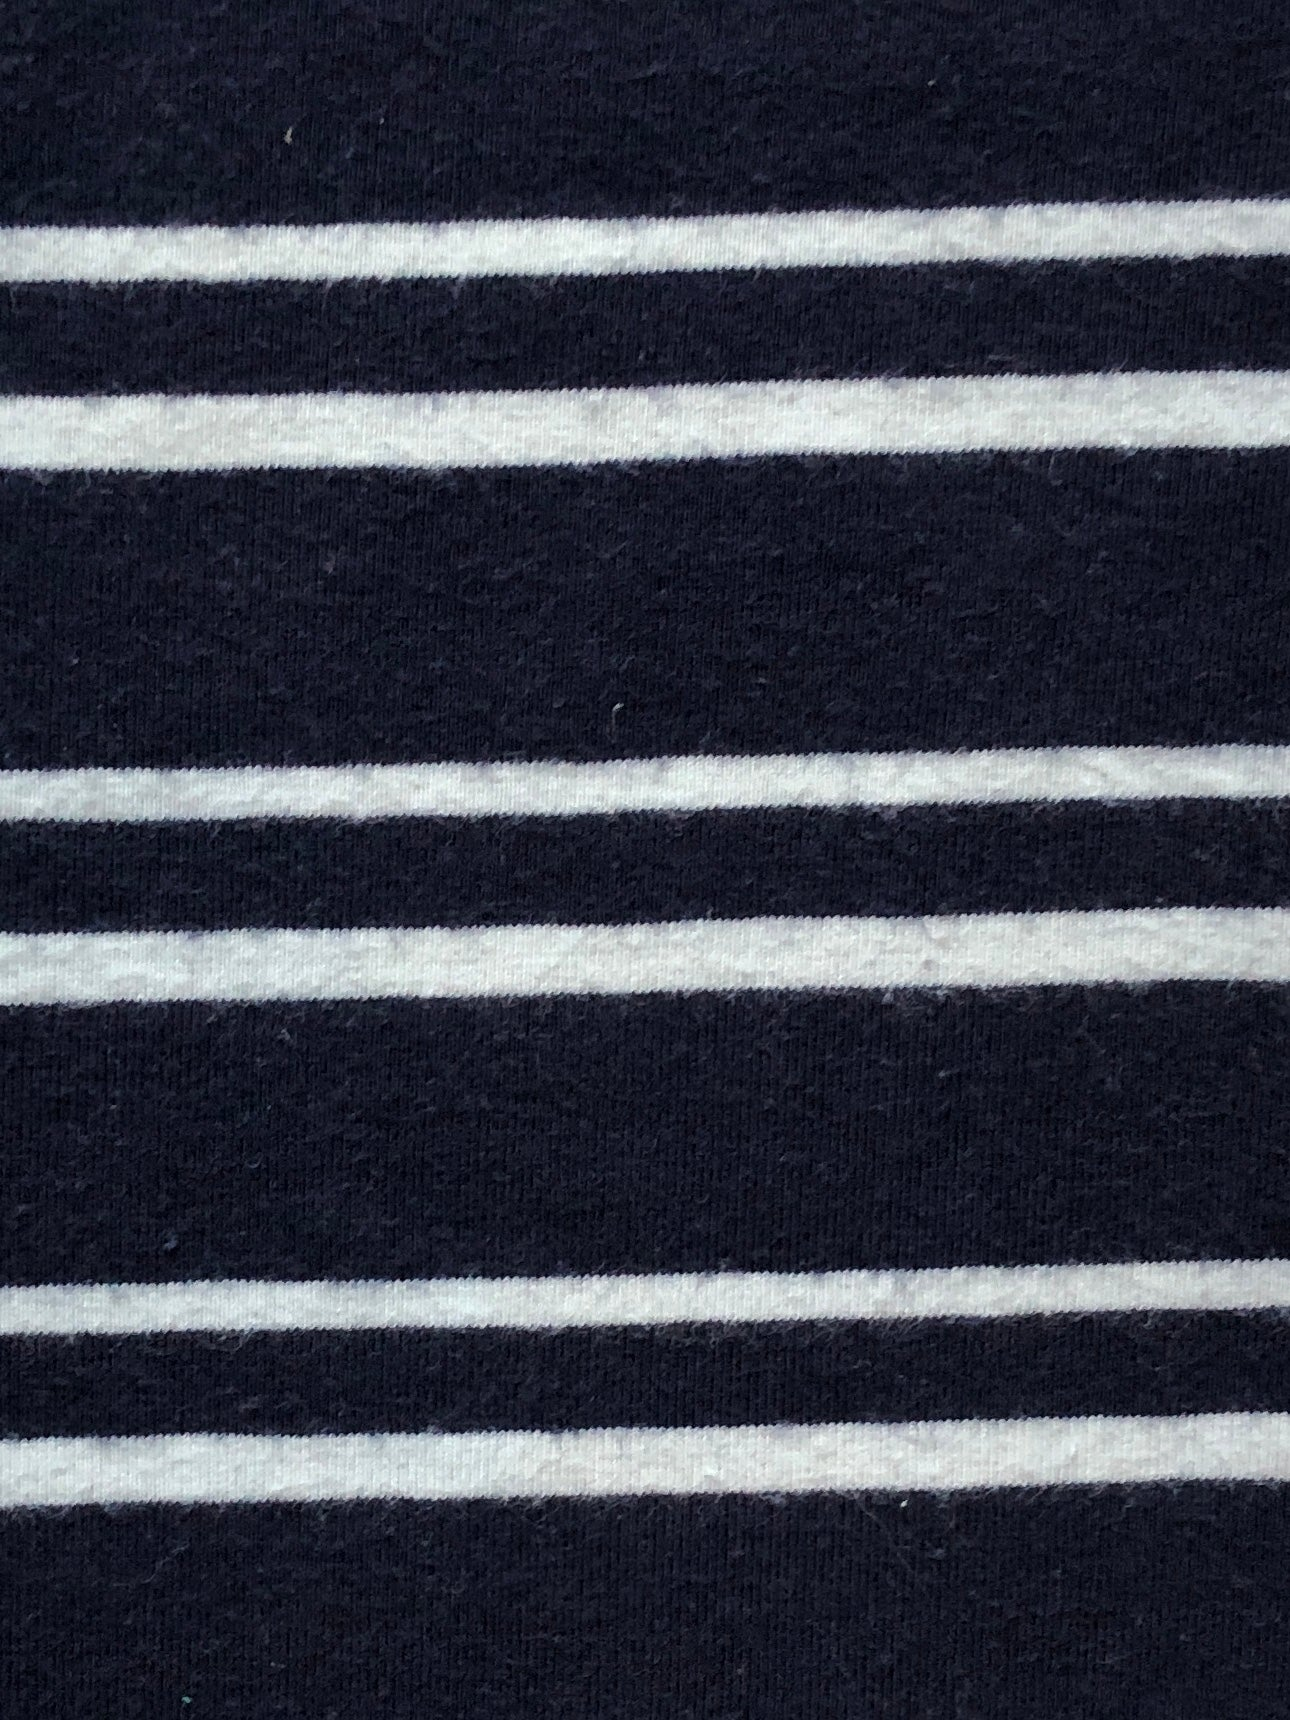 Stripes are so nice, you put them on twice